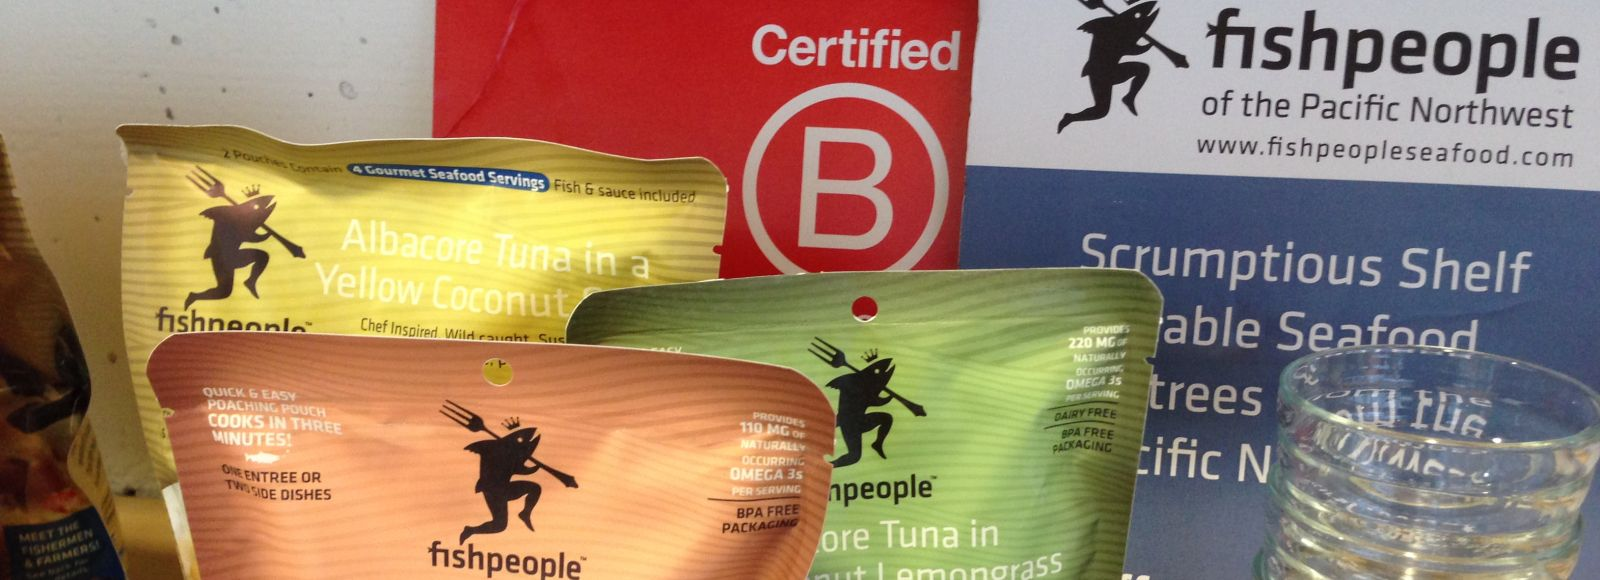 Colorful bags of fish on a table from Certified B Corp organization fishpeople